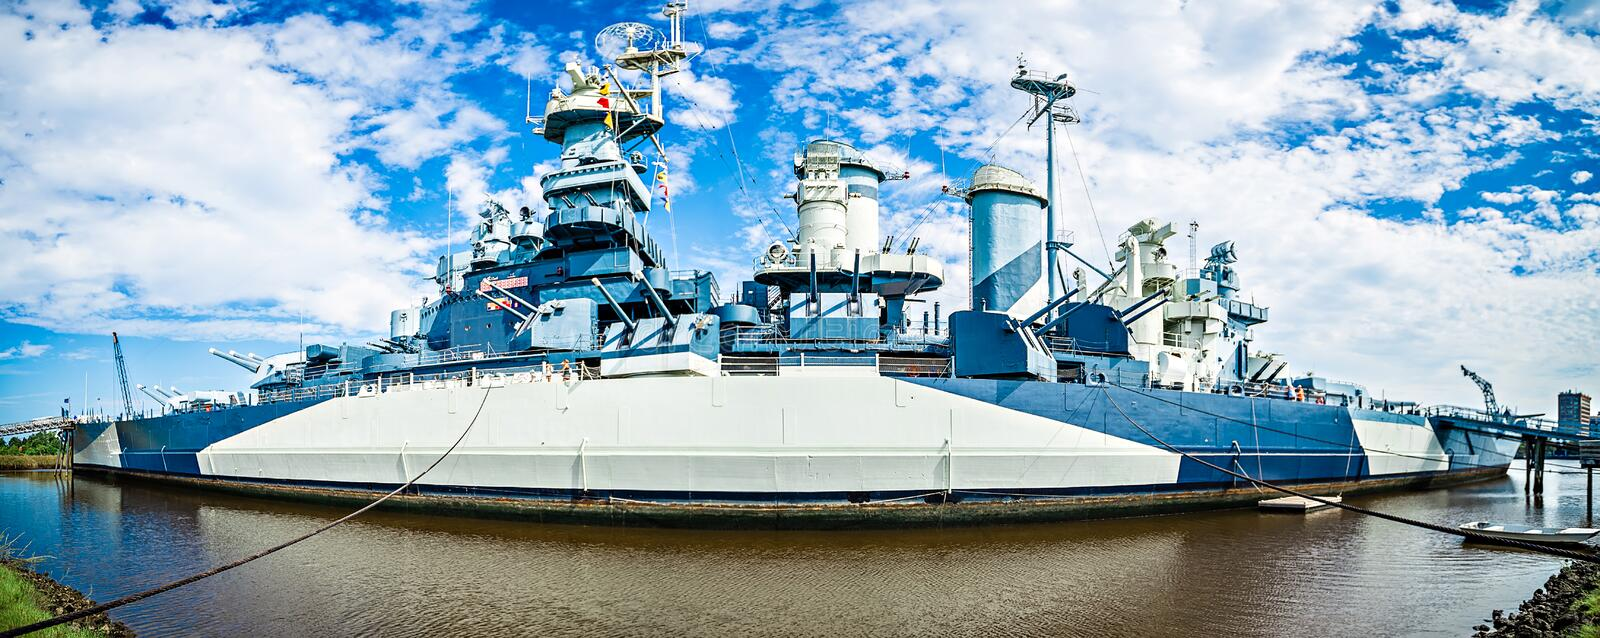 USS-North Carolina-Panorama stockfotografie